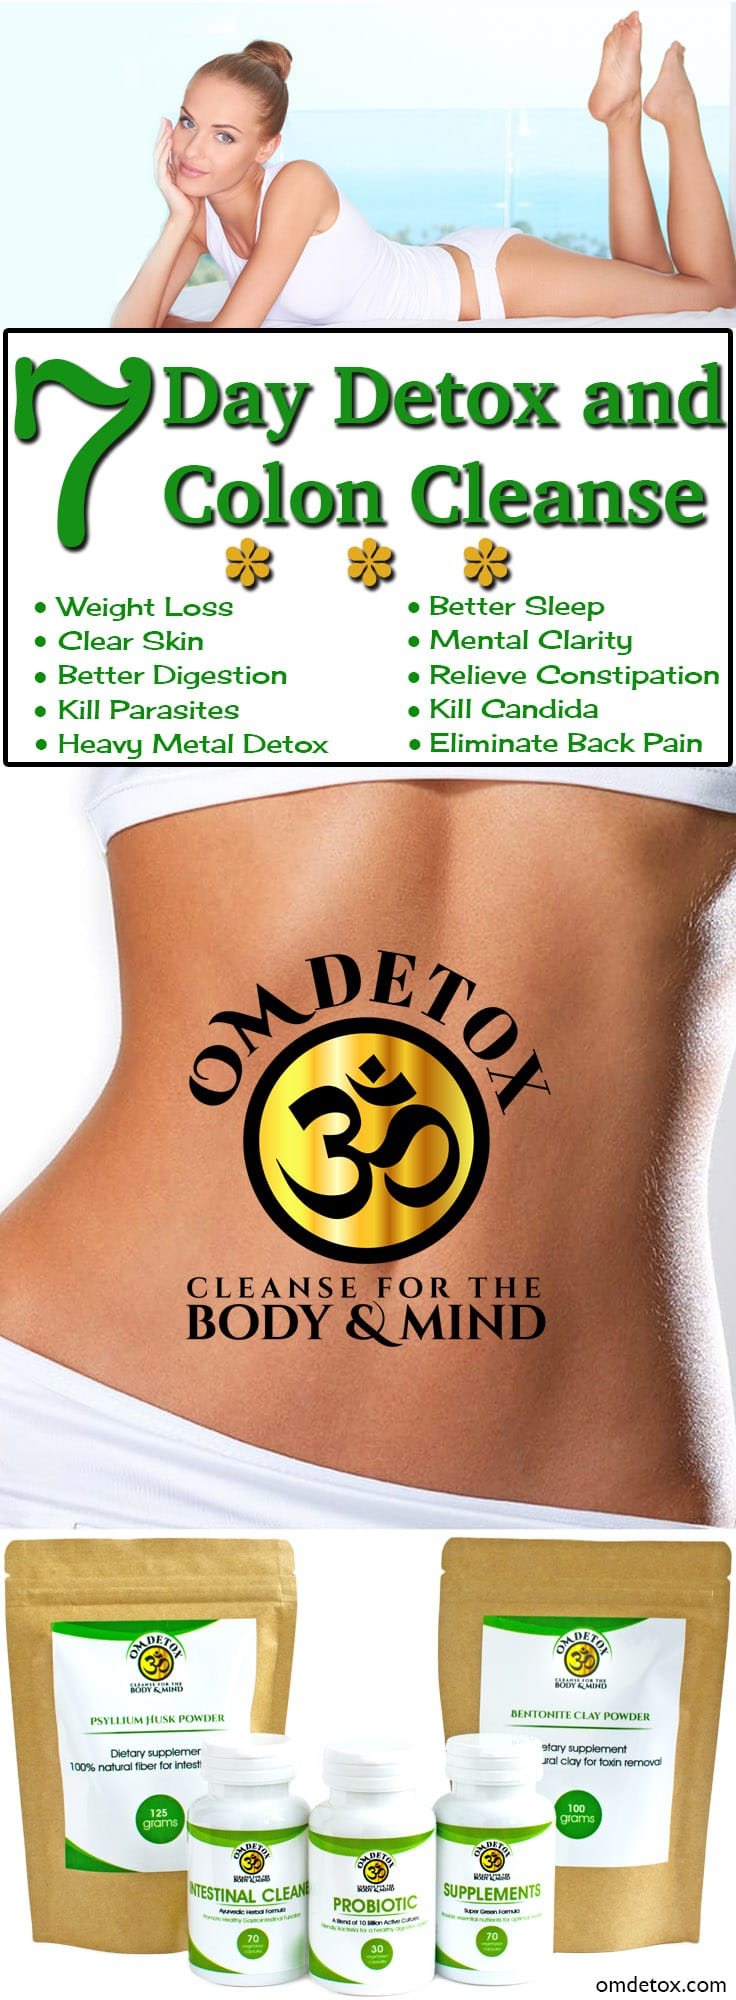 Om Detox 7 Day Detox and Colon Cleanse, For easy weight loss and parasite treatment